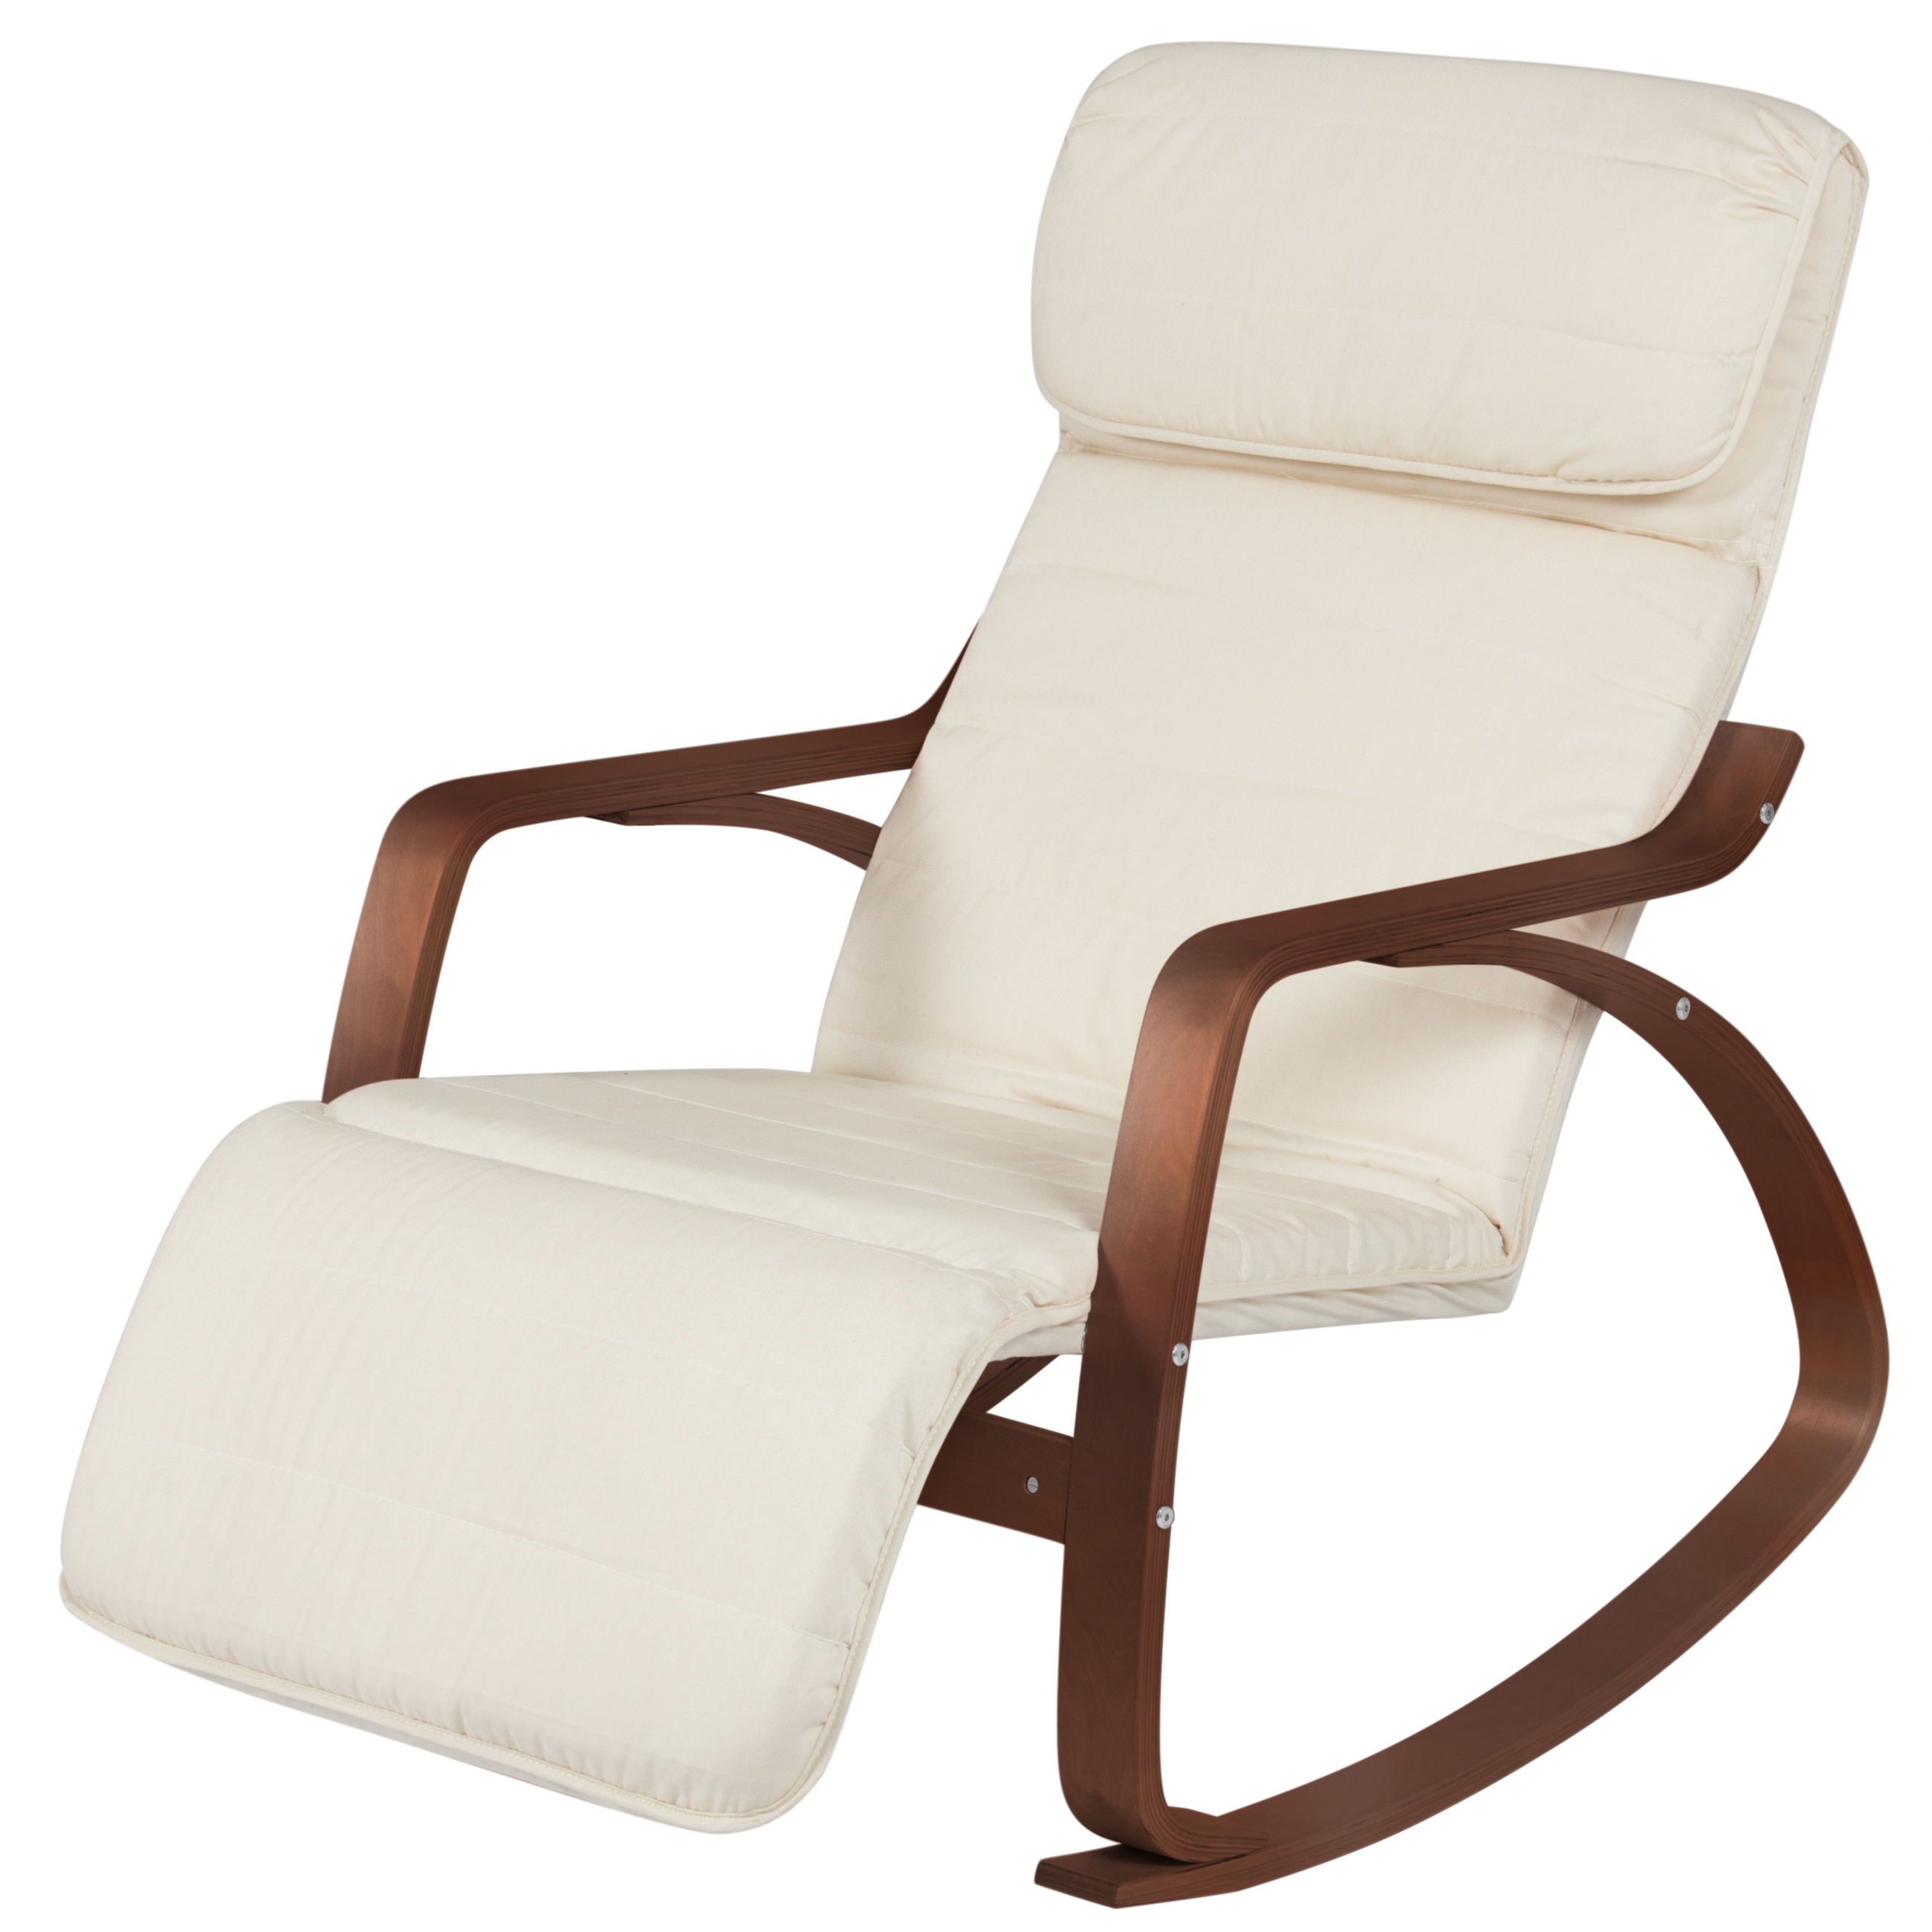 Best Choice Products Cushioned Birch Bentwood Rocking Chair W/ Adjustable  Leg Rest – White/espresso For Folding Bentwood Rocking Chairs With Extendable Footrest And Removable Cover (#2 of 20)